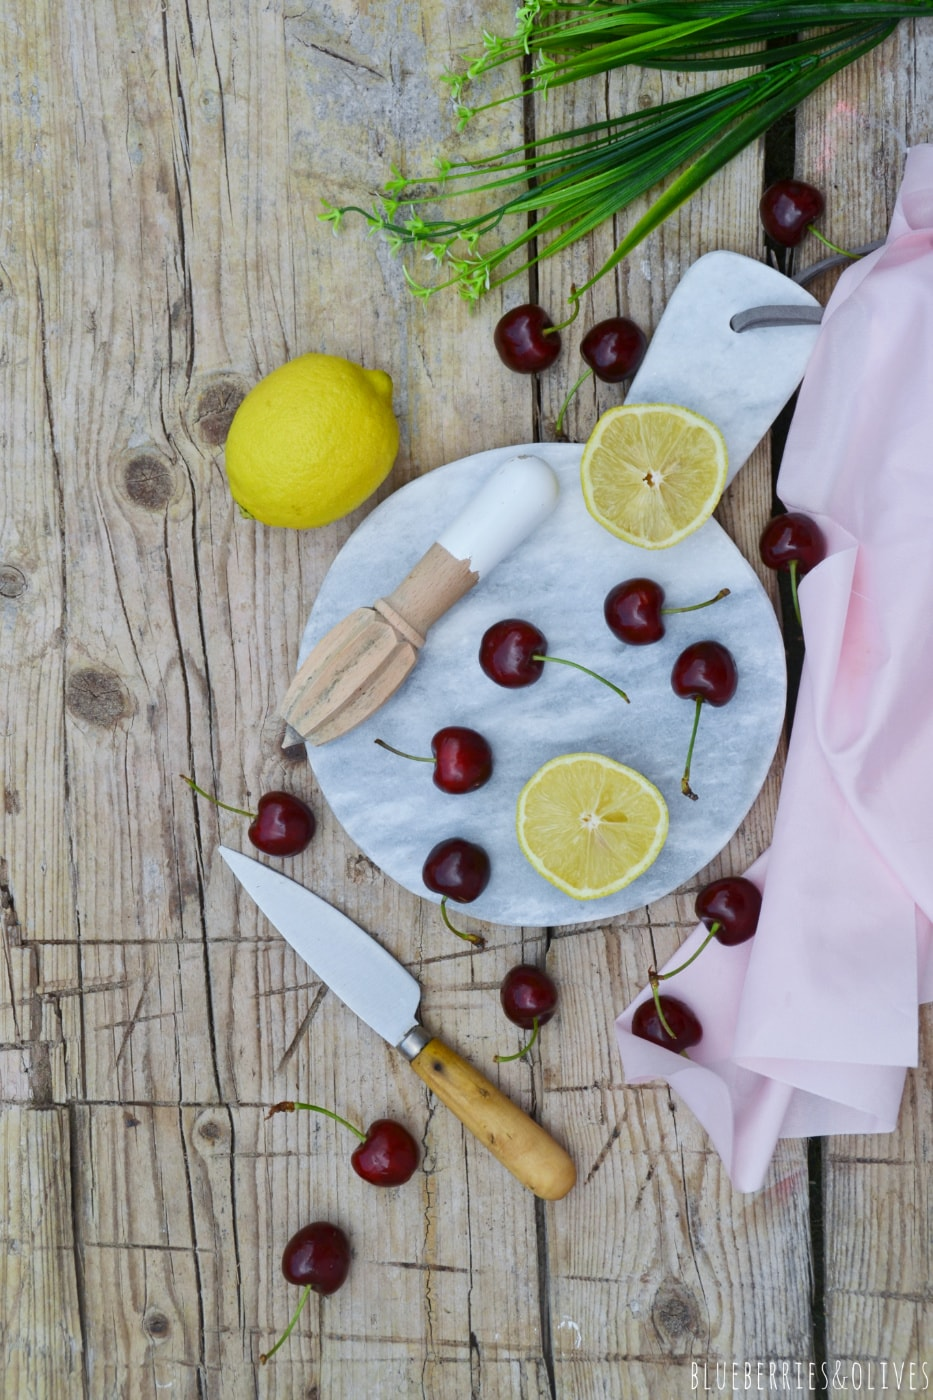 ingredients of cherry lemonade, wood handle knife and wood squeezer,lemons and cherries, cutting white marble board over old wood table